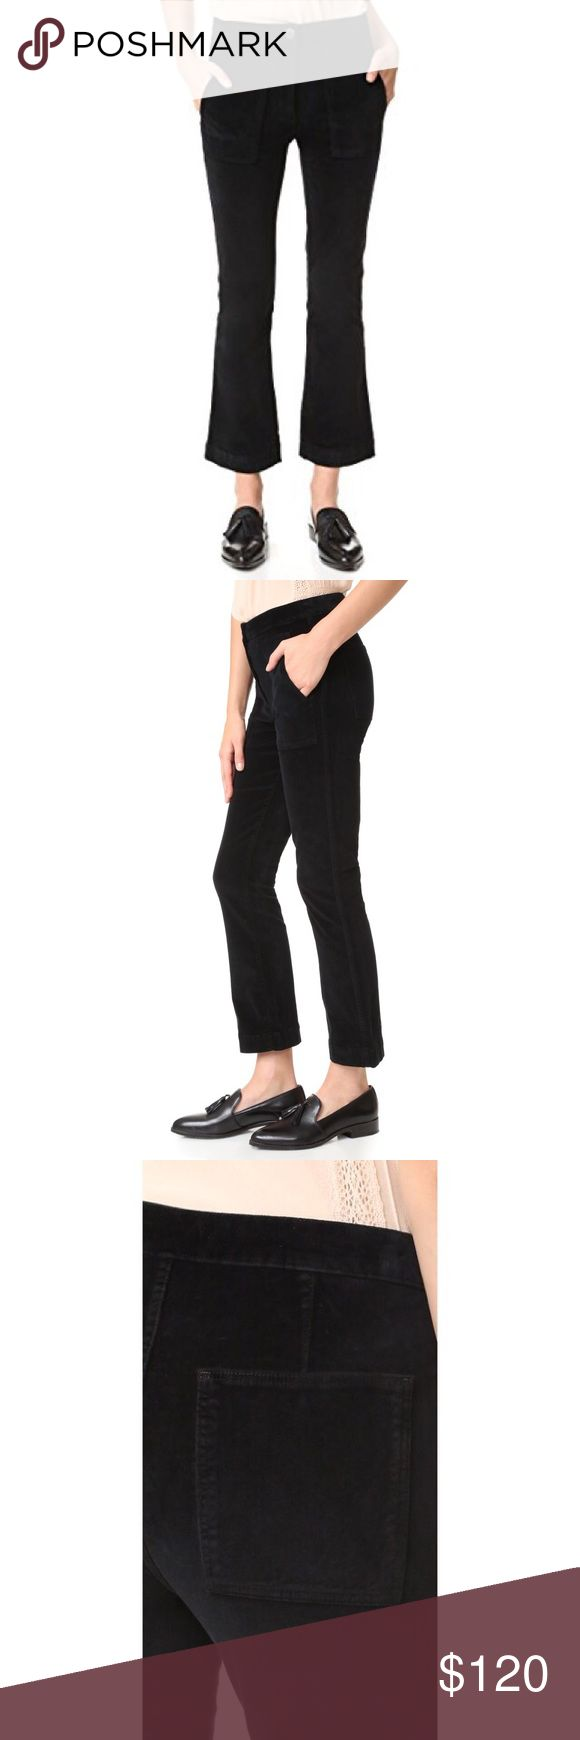 3x1 Black Crop Pants Brand new with tag crop pants with exaggerated pockets 3x1 Pants Ankle & Cropped